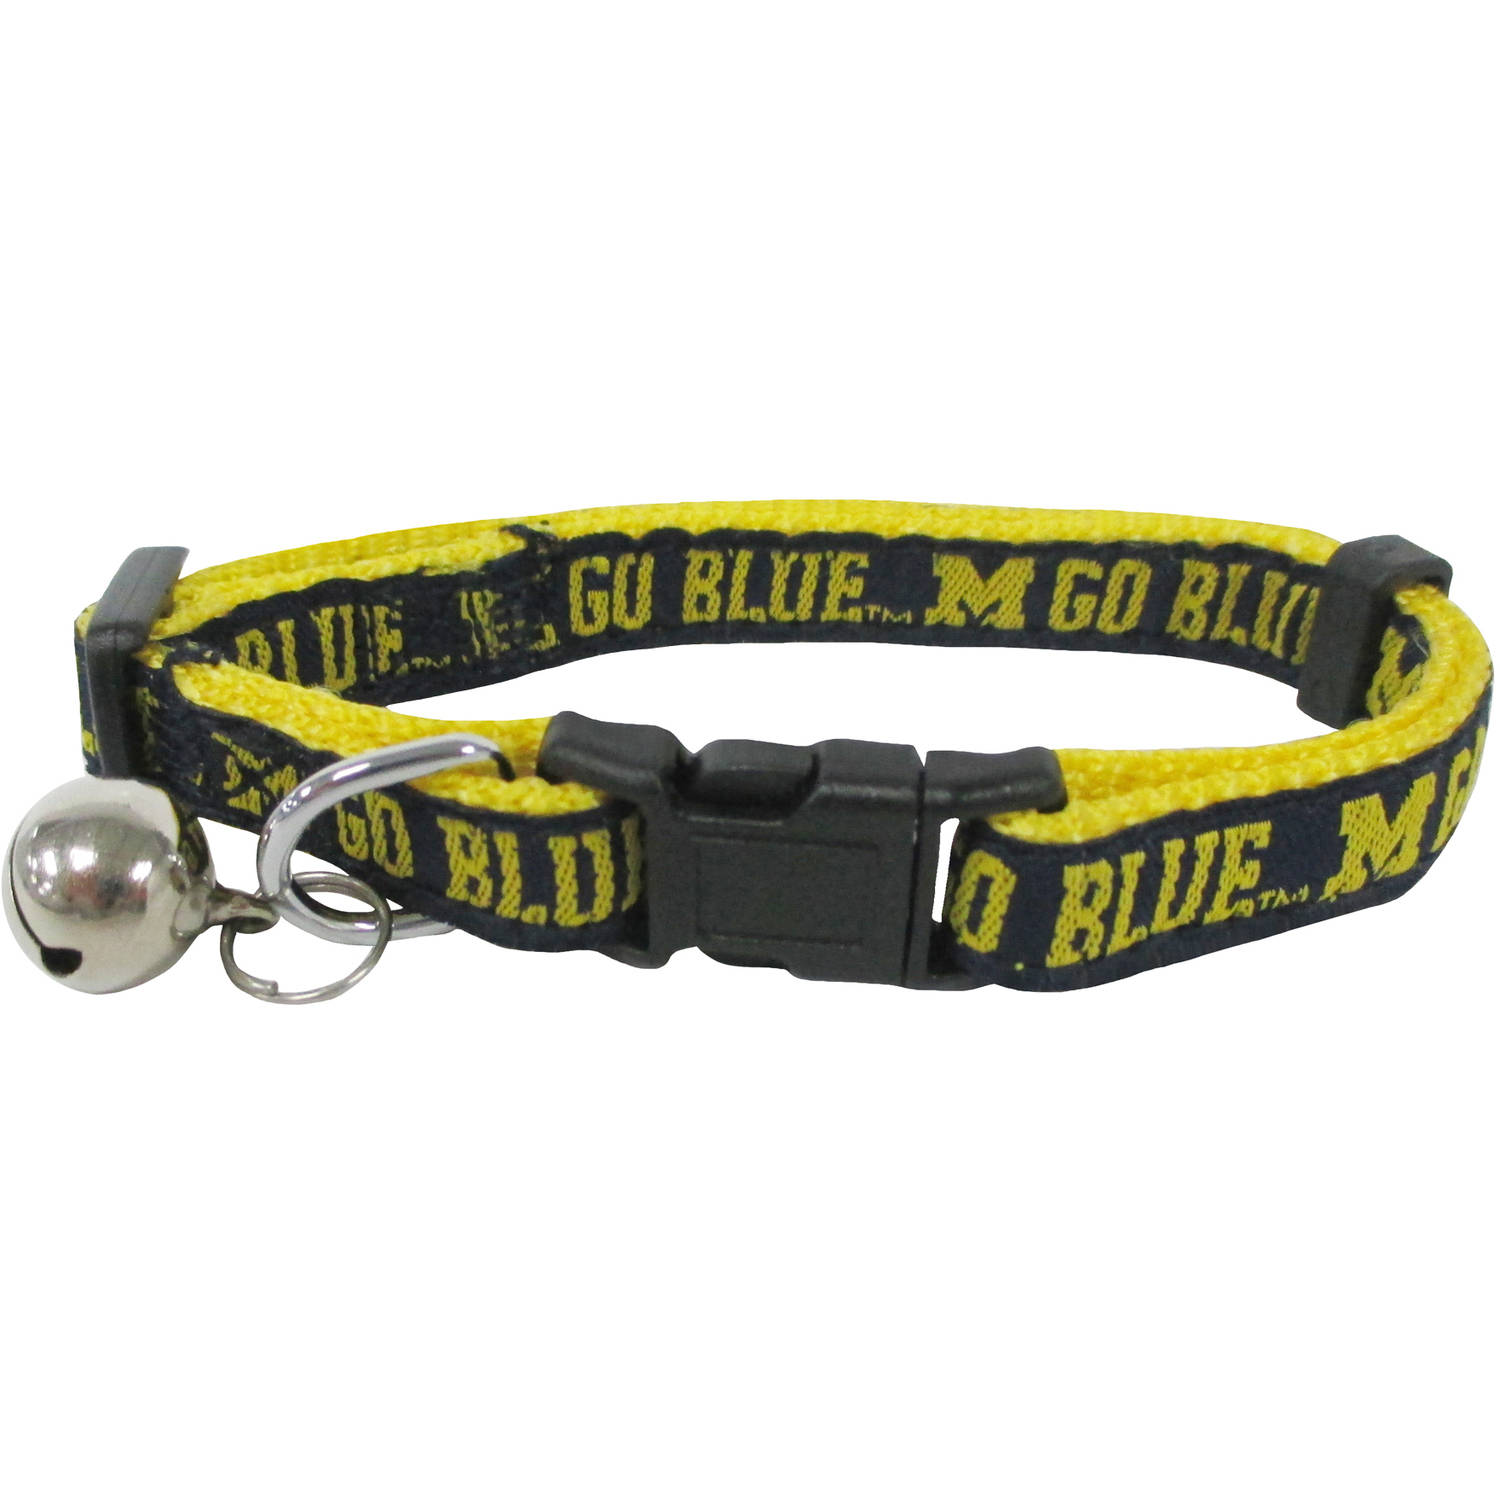 Pets First College Michigan Wolverines Cat Collar